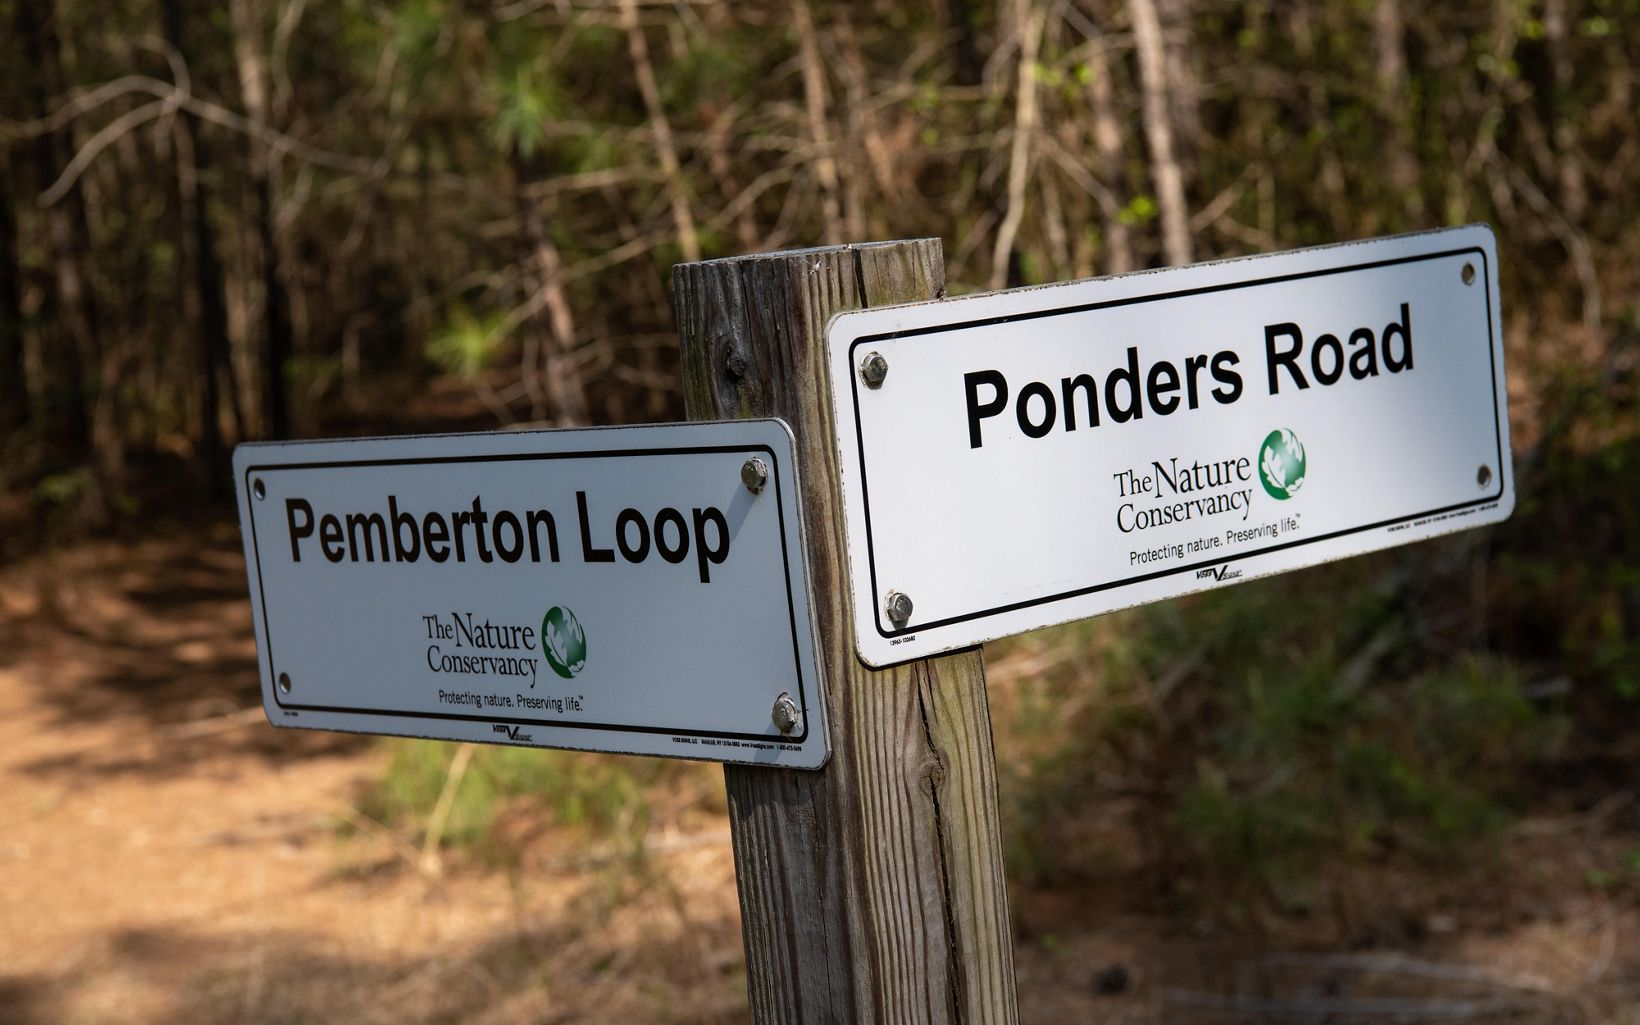 Ponders Tract Trail